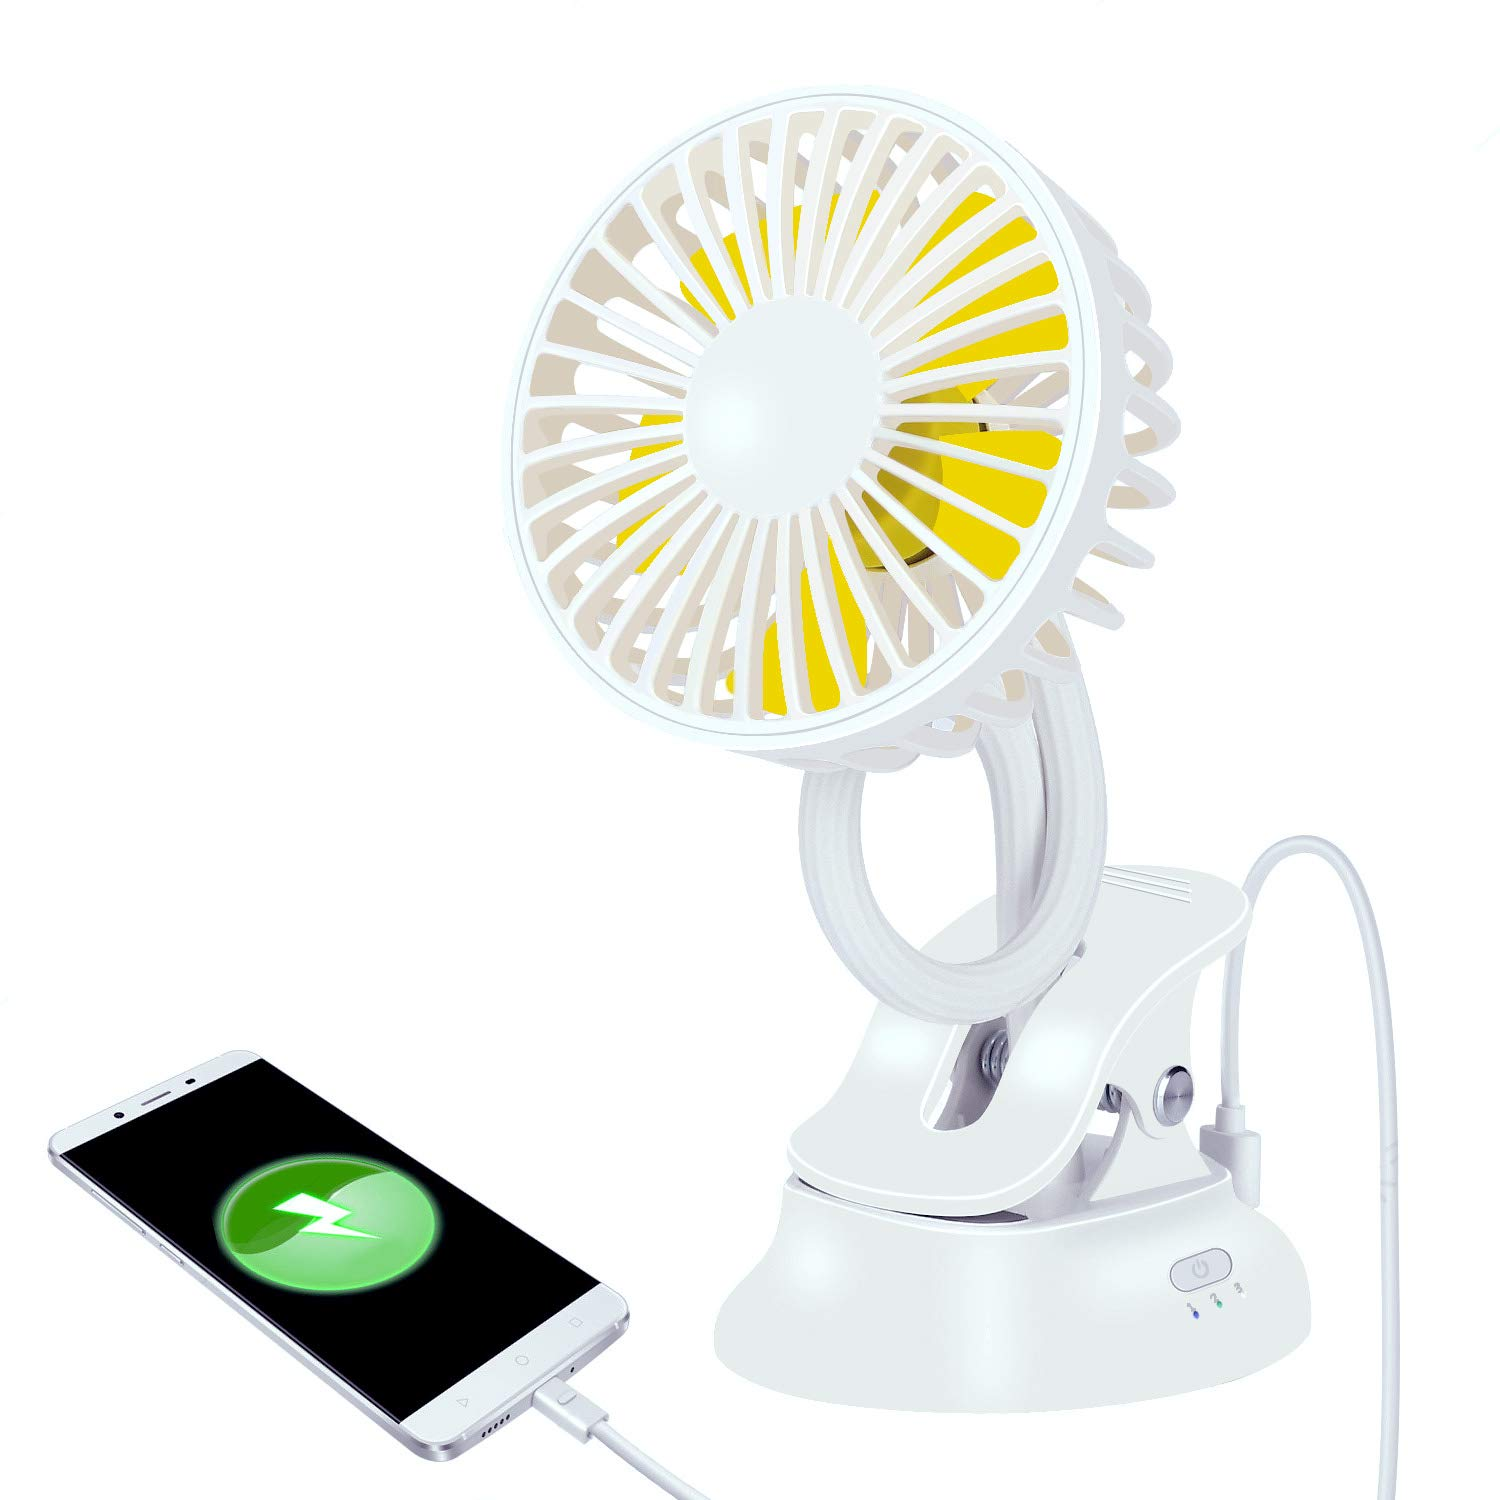 Stroller Fan Clip On Baby Mini for Carseat, T1lever 2000mAh Rechargeable Built-in Battery,Charge Phone,Portable Flexible Bent USB Clip Fan with Power Bank for Car Seat Desk Wheelchairs,Prams (White)